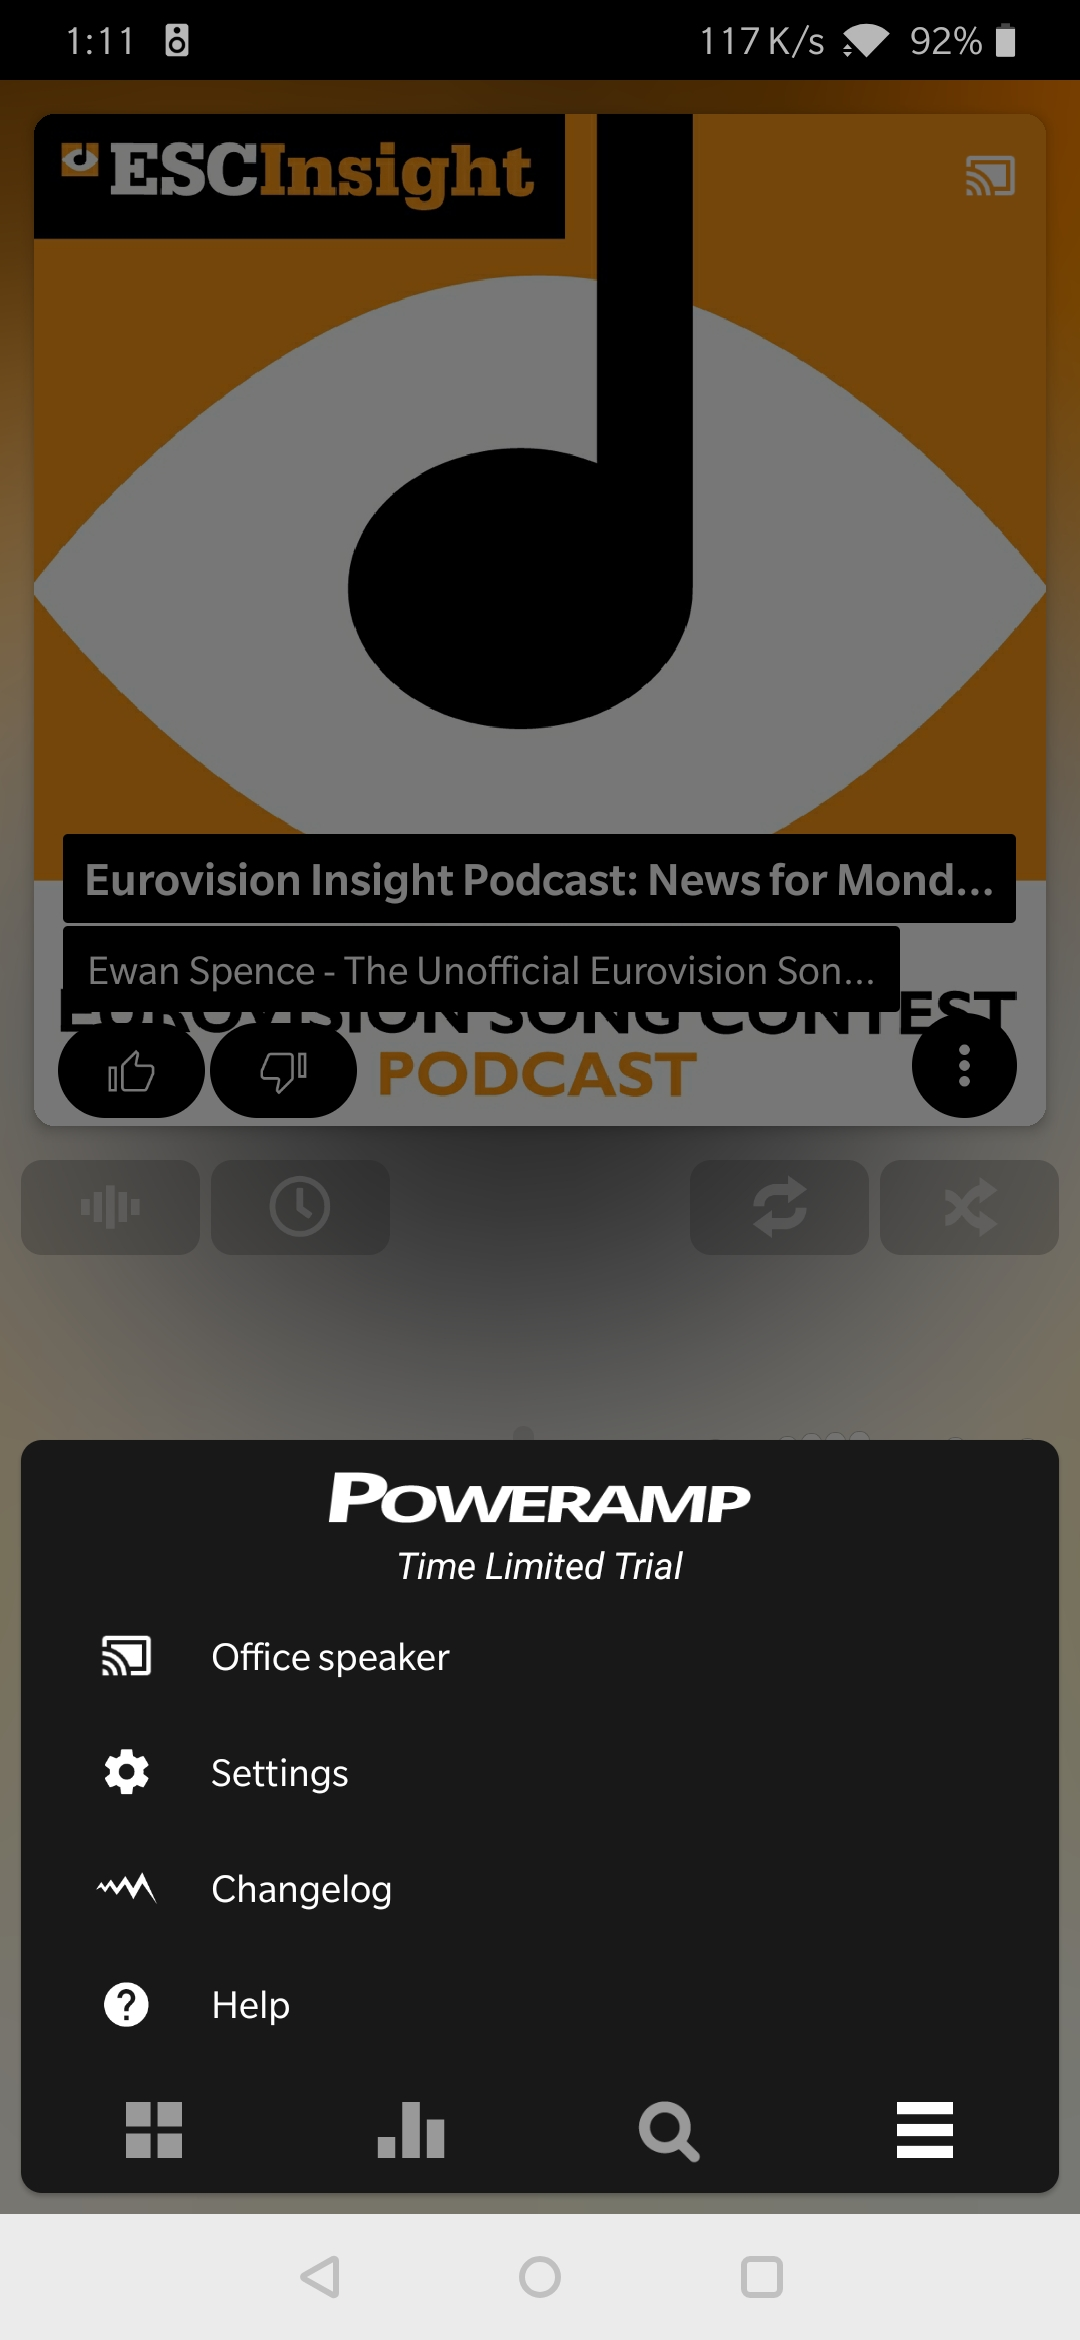 Poweramp adds Chromecast support and Google Assistant voice